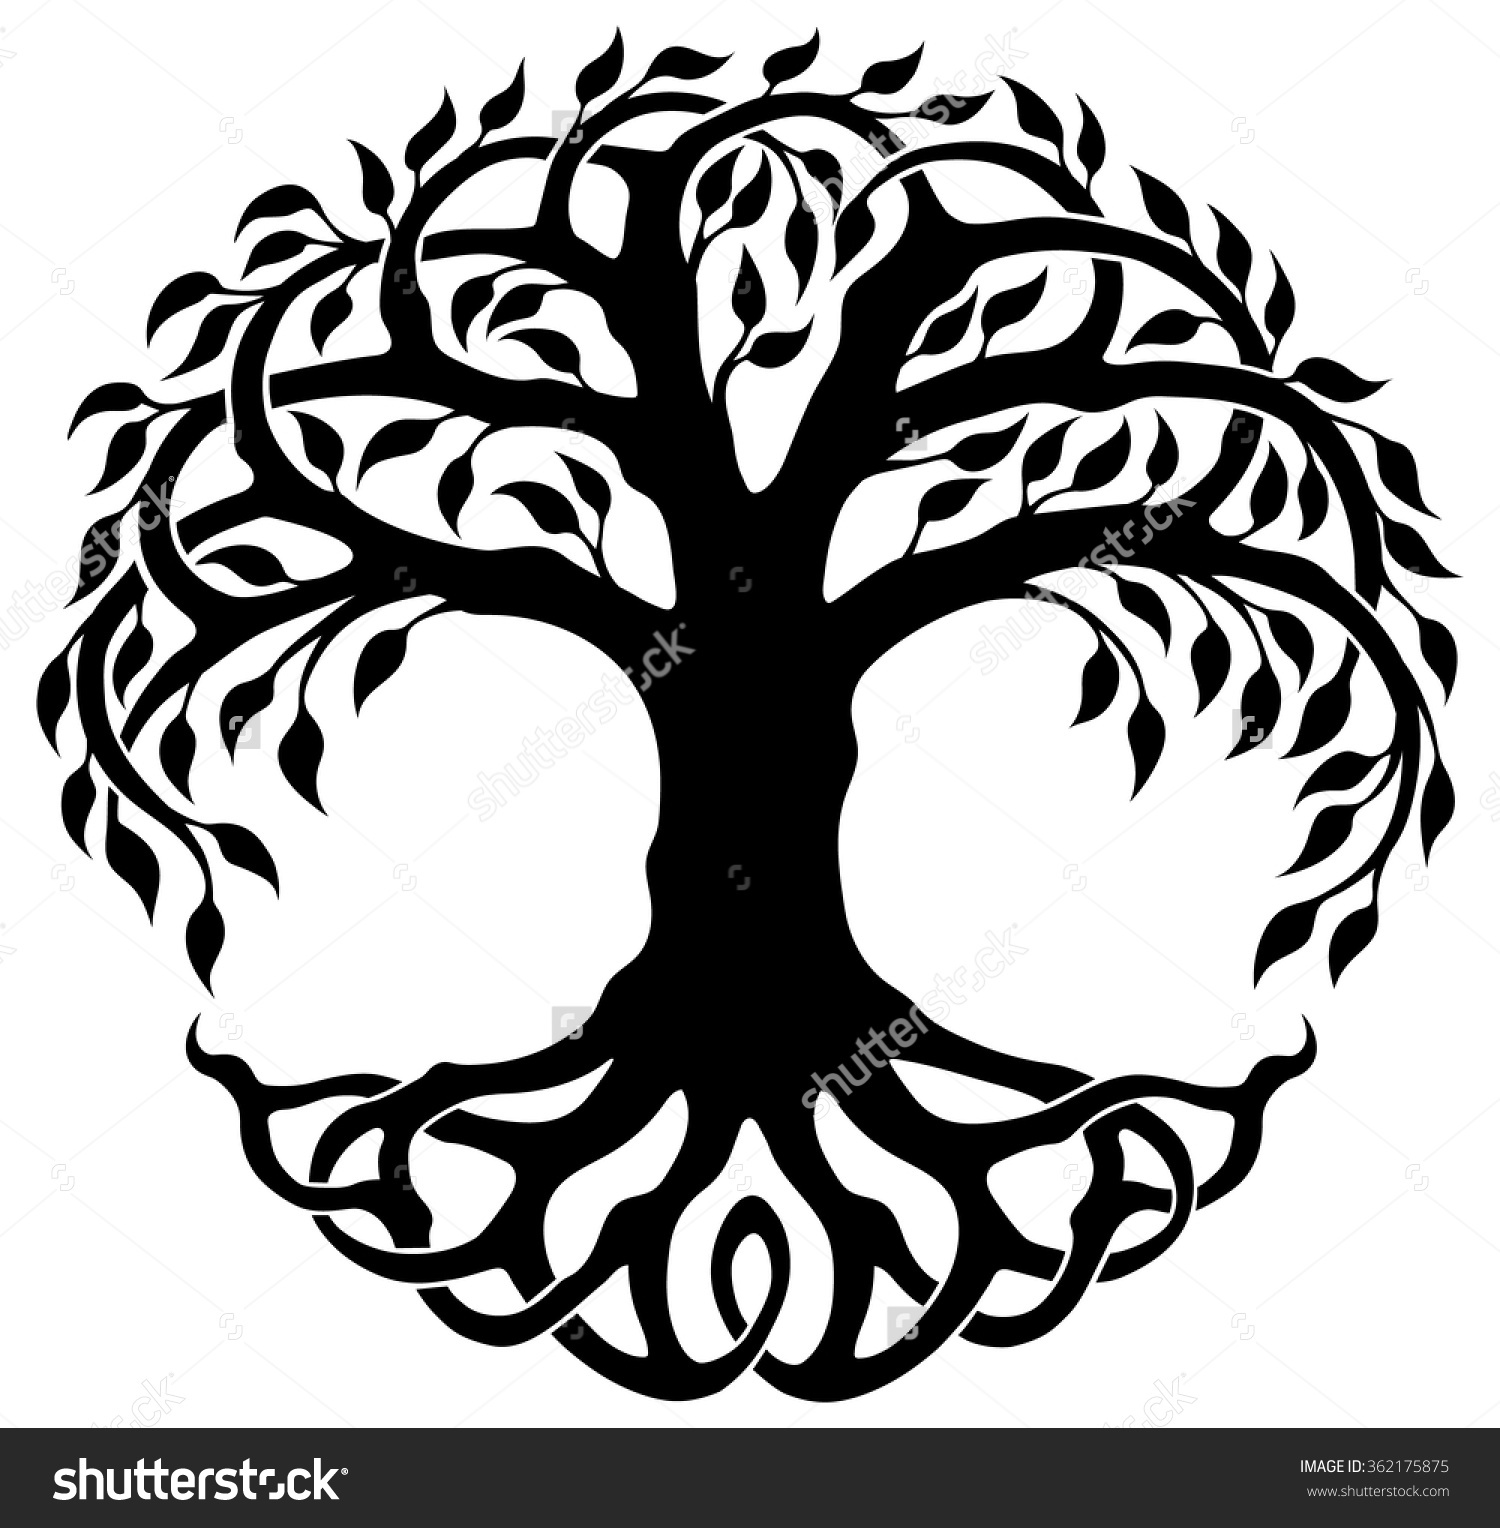 whimsical tree silhouette at getdrawings com free for personal use rh getdrawings com transparent tree of life clipart tree of life clipart images